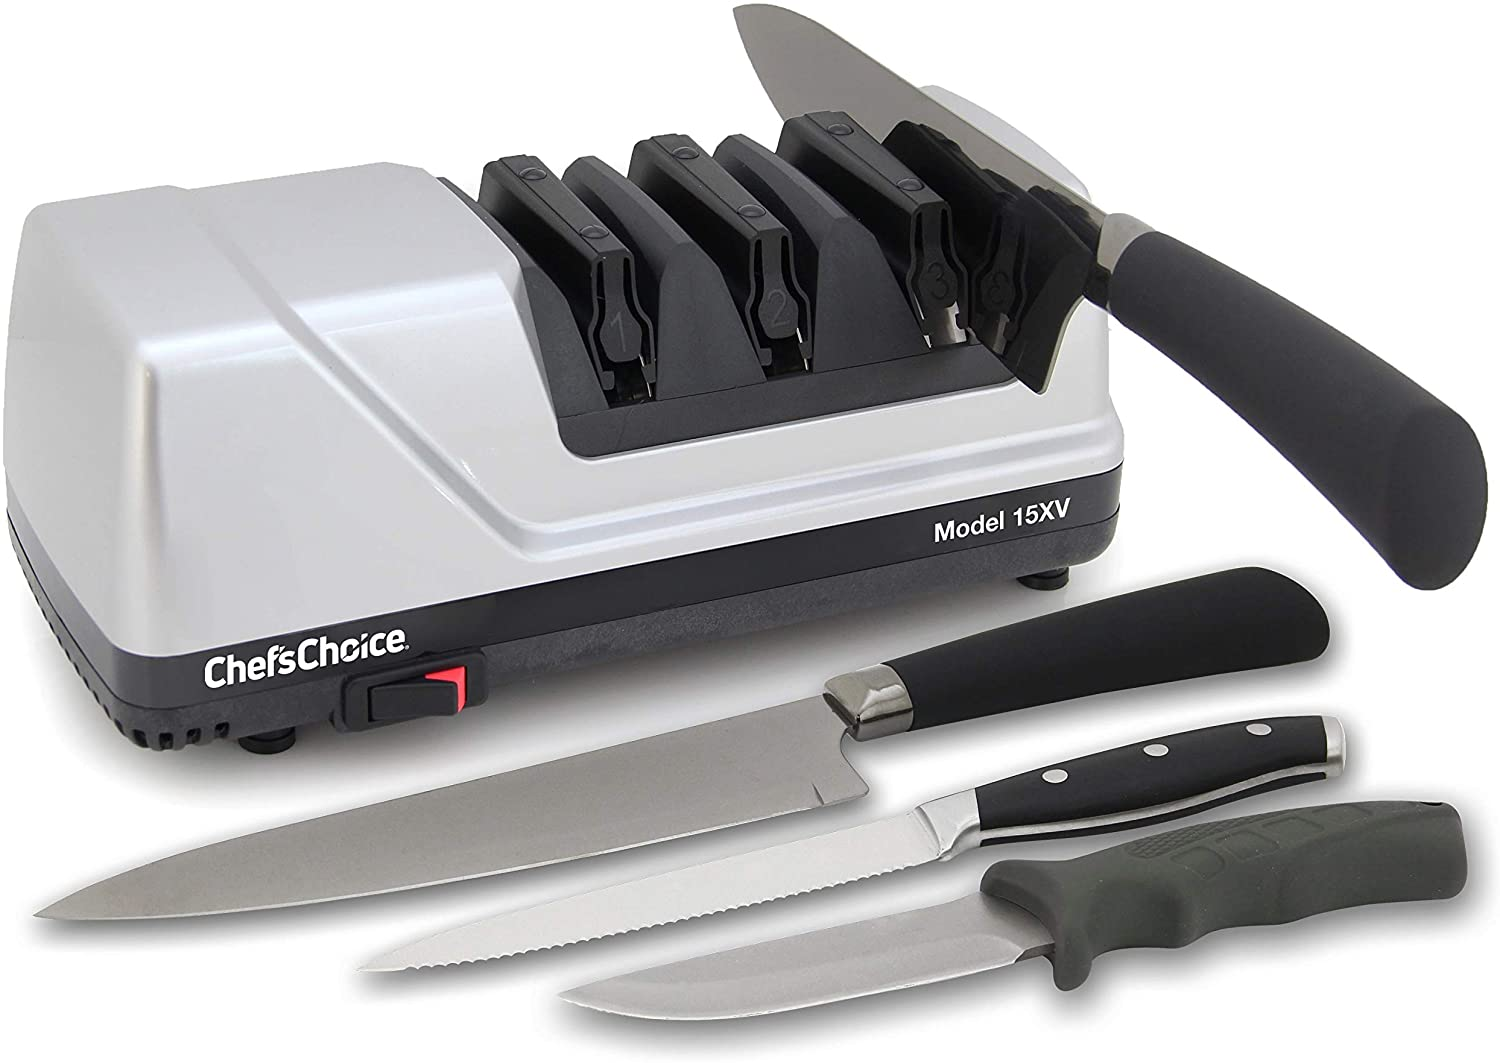 Chef's Choice Trizor XV EdgeSelect Knife Sharpener